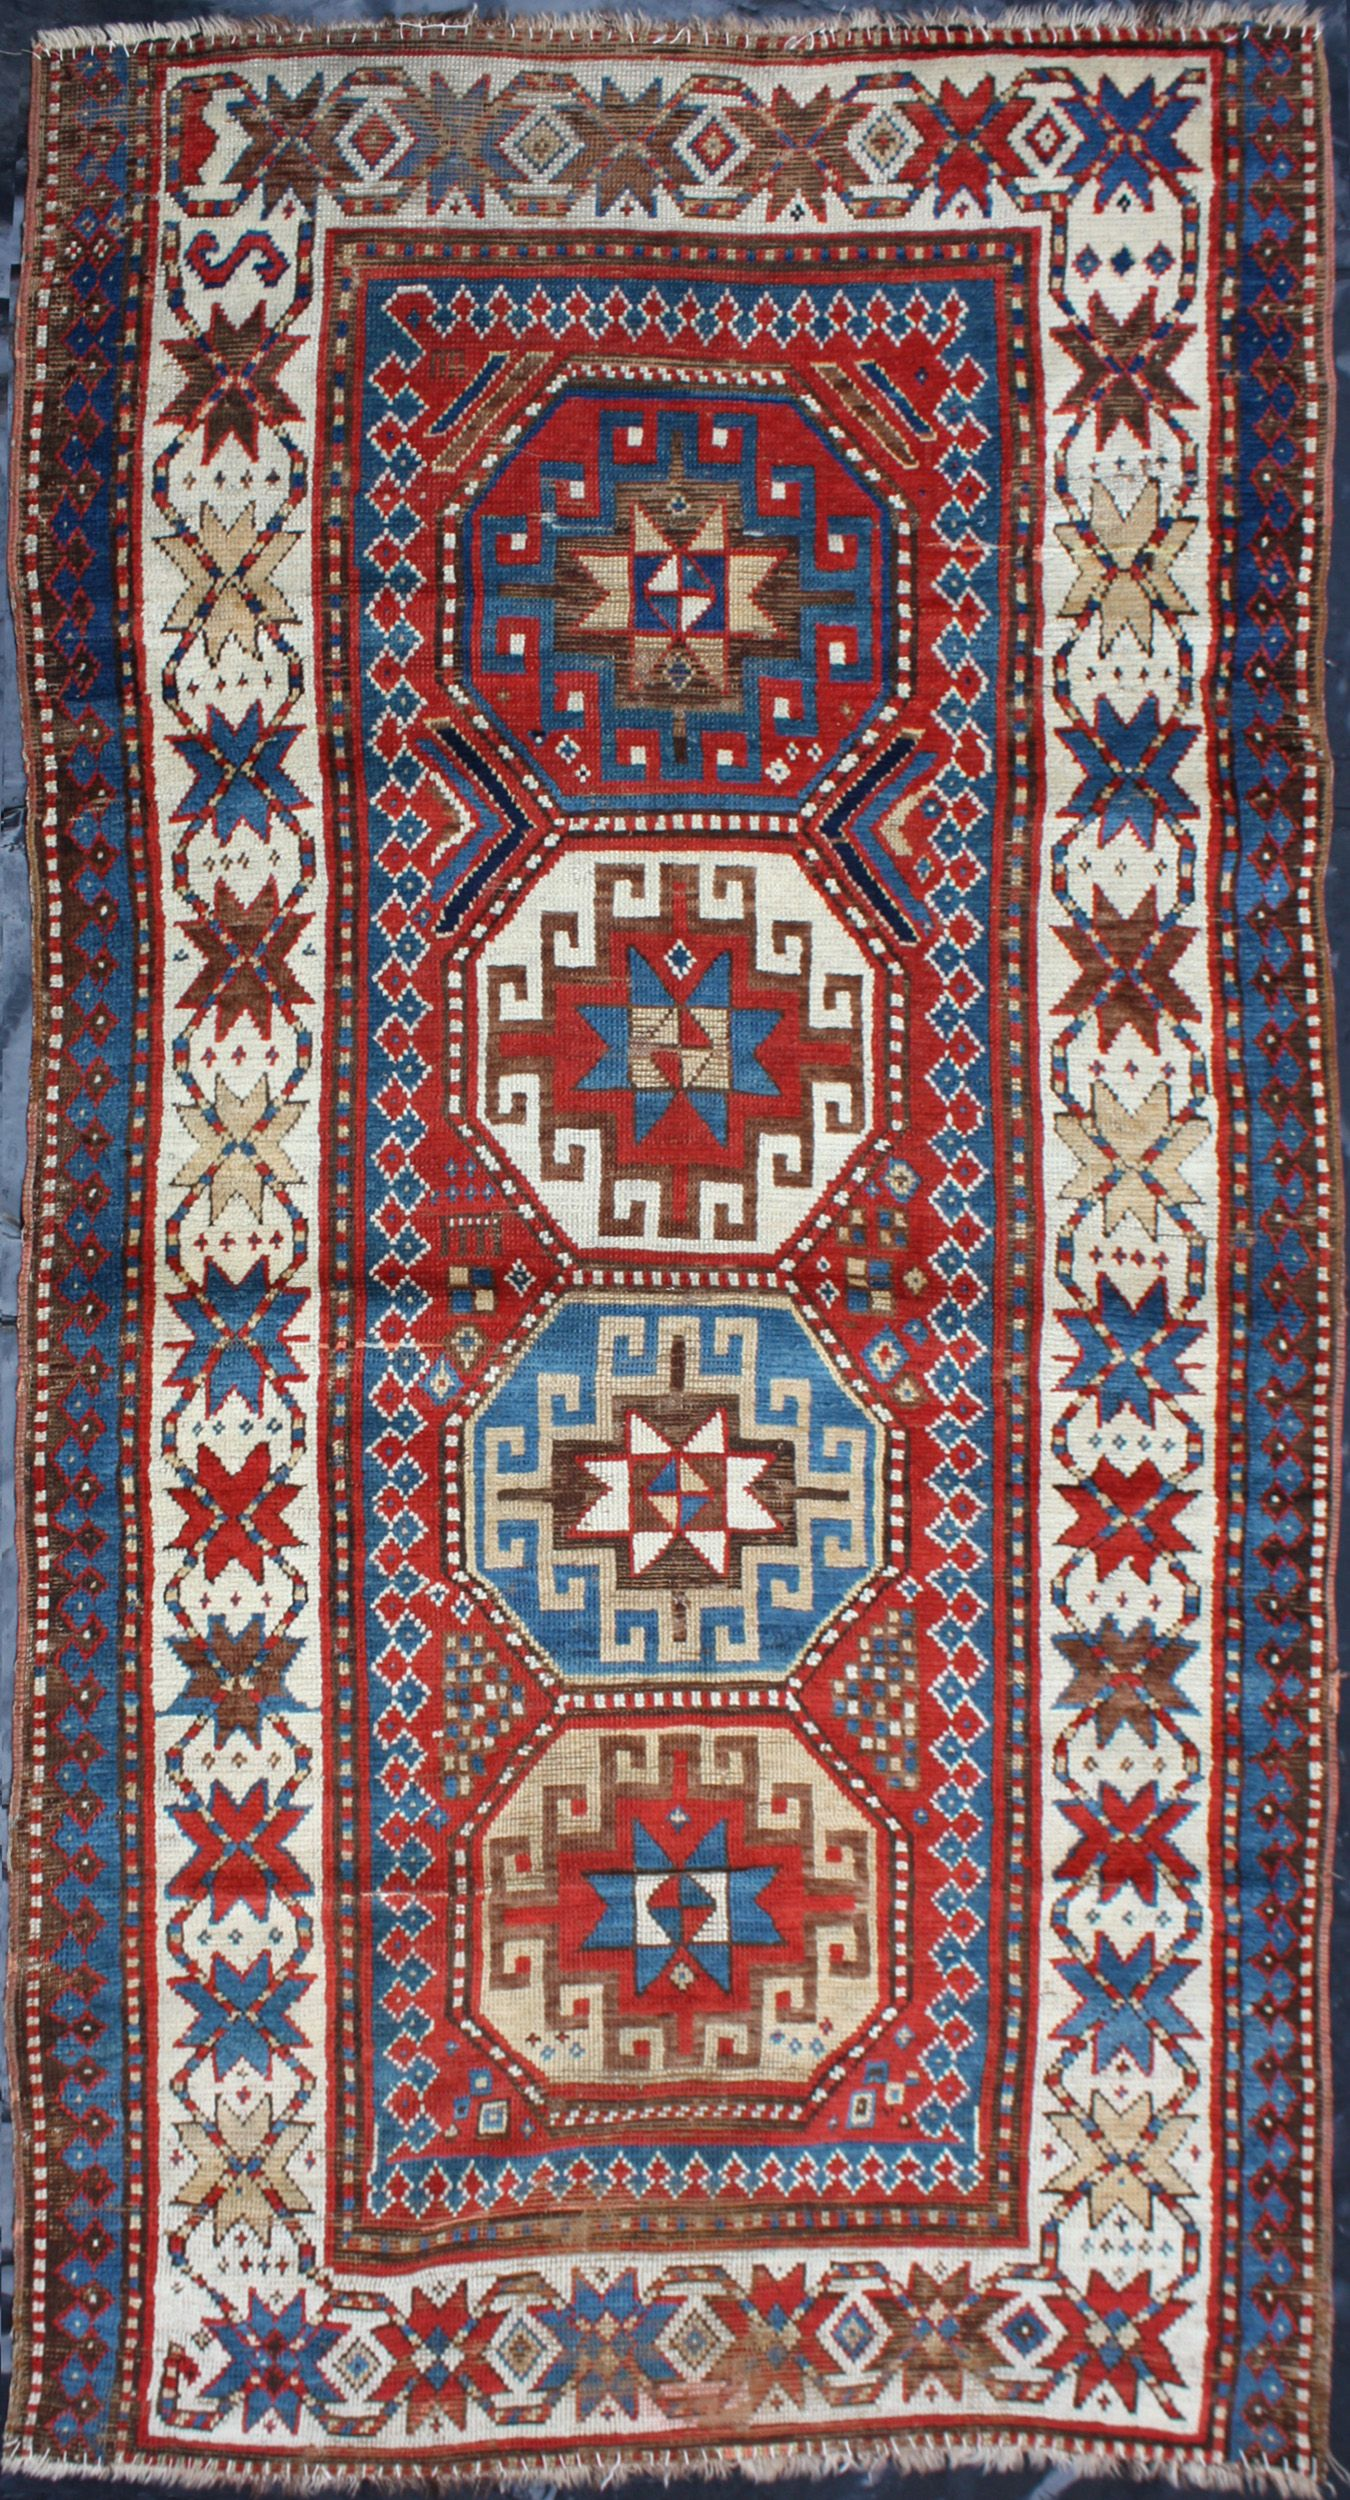 kazak rugs caucasian rug kazak carpet rugs carpets. Black Bedroom Furniture Sets. Home Design Ideas